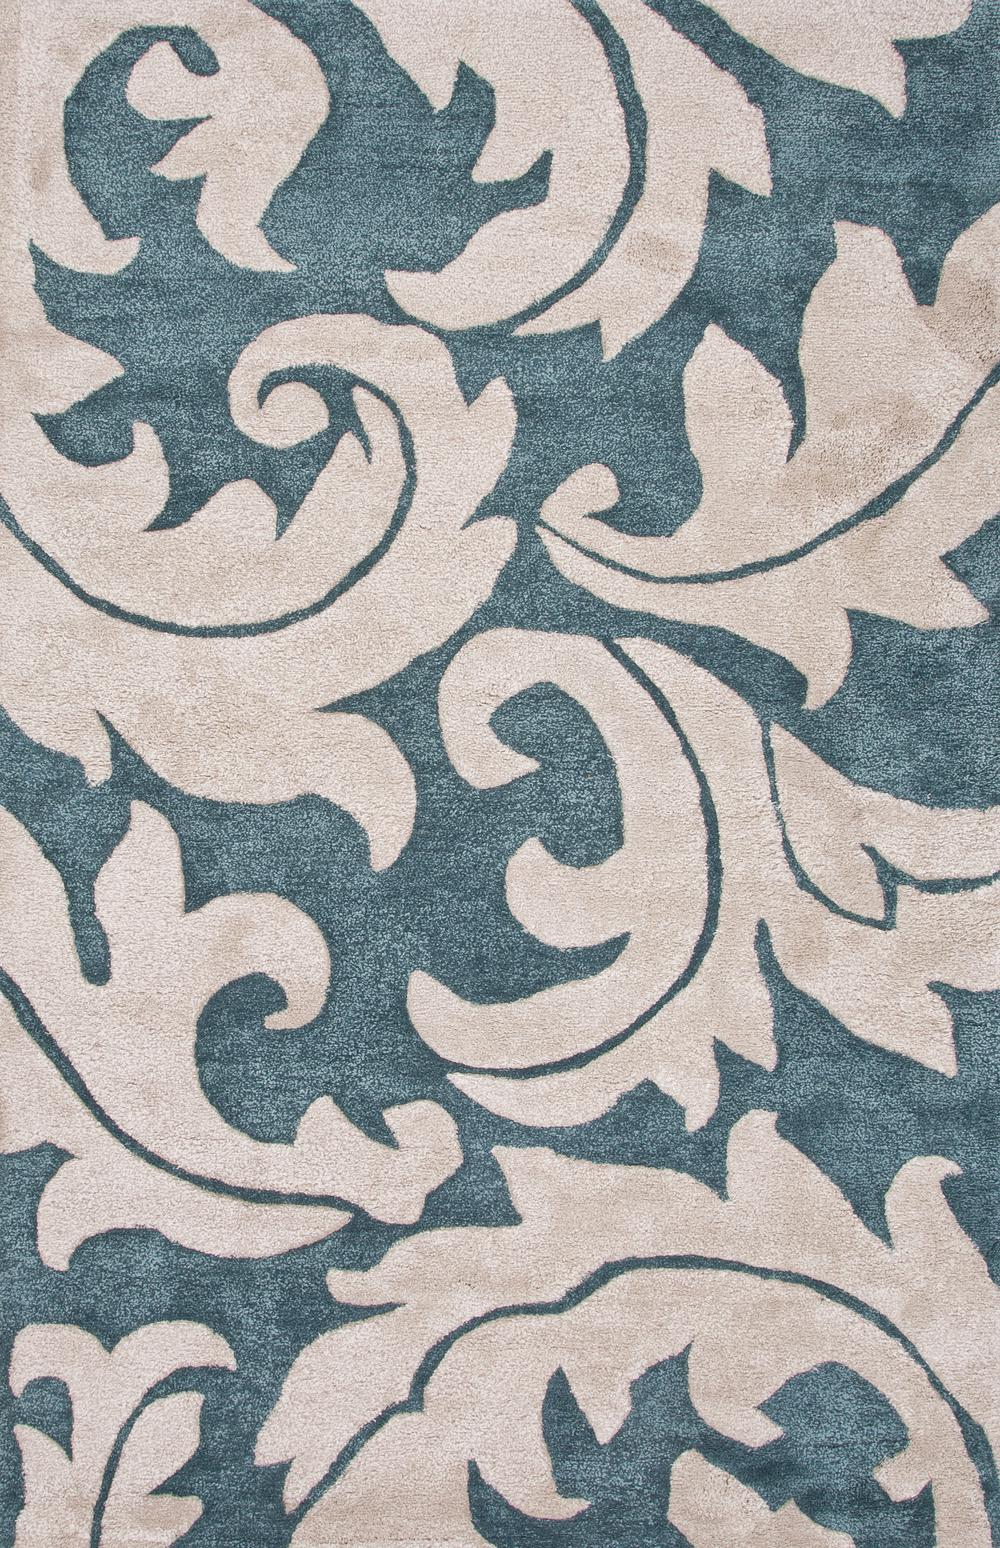 Jaipur blue aloha blue white bl133 area rug free shipping for Blue and white area rugs